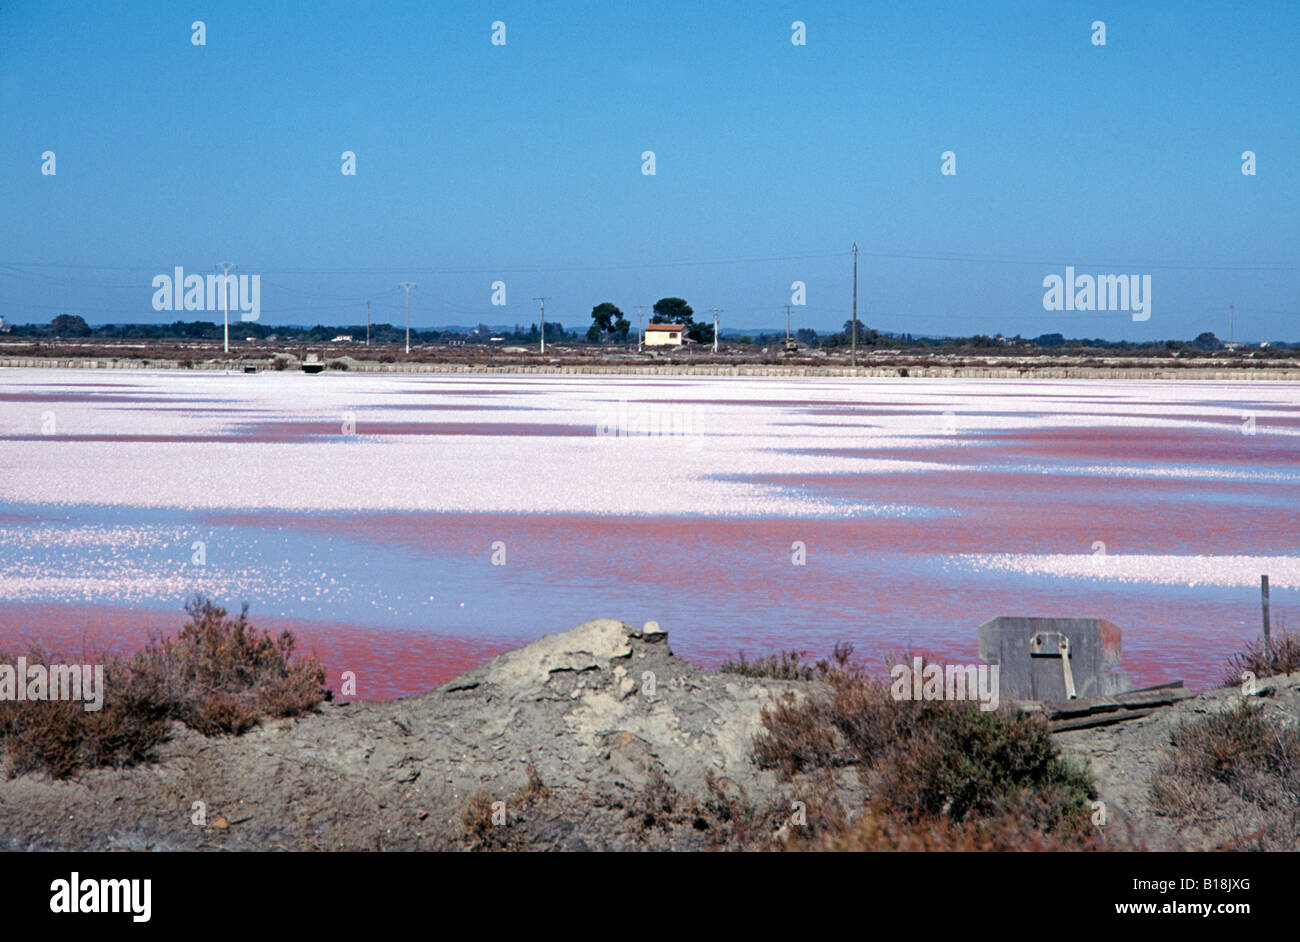 Salt flats at Les Salins, Aigues Mortes ,South of France tinged pink with micro-organisms that are eaten by fish - Stock Image